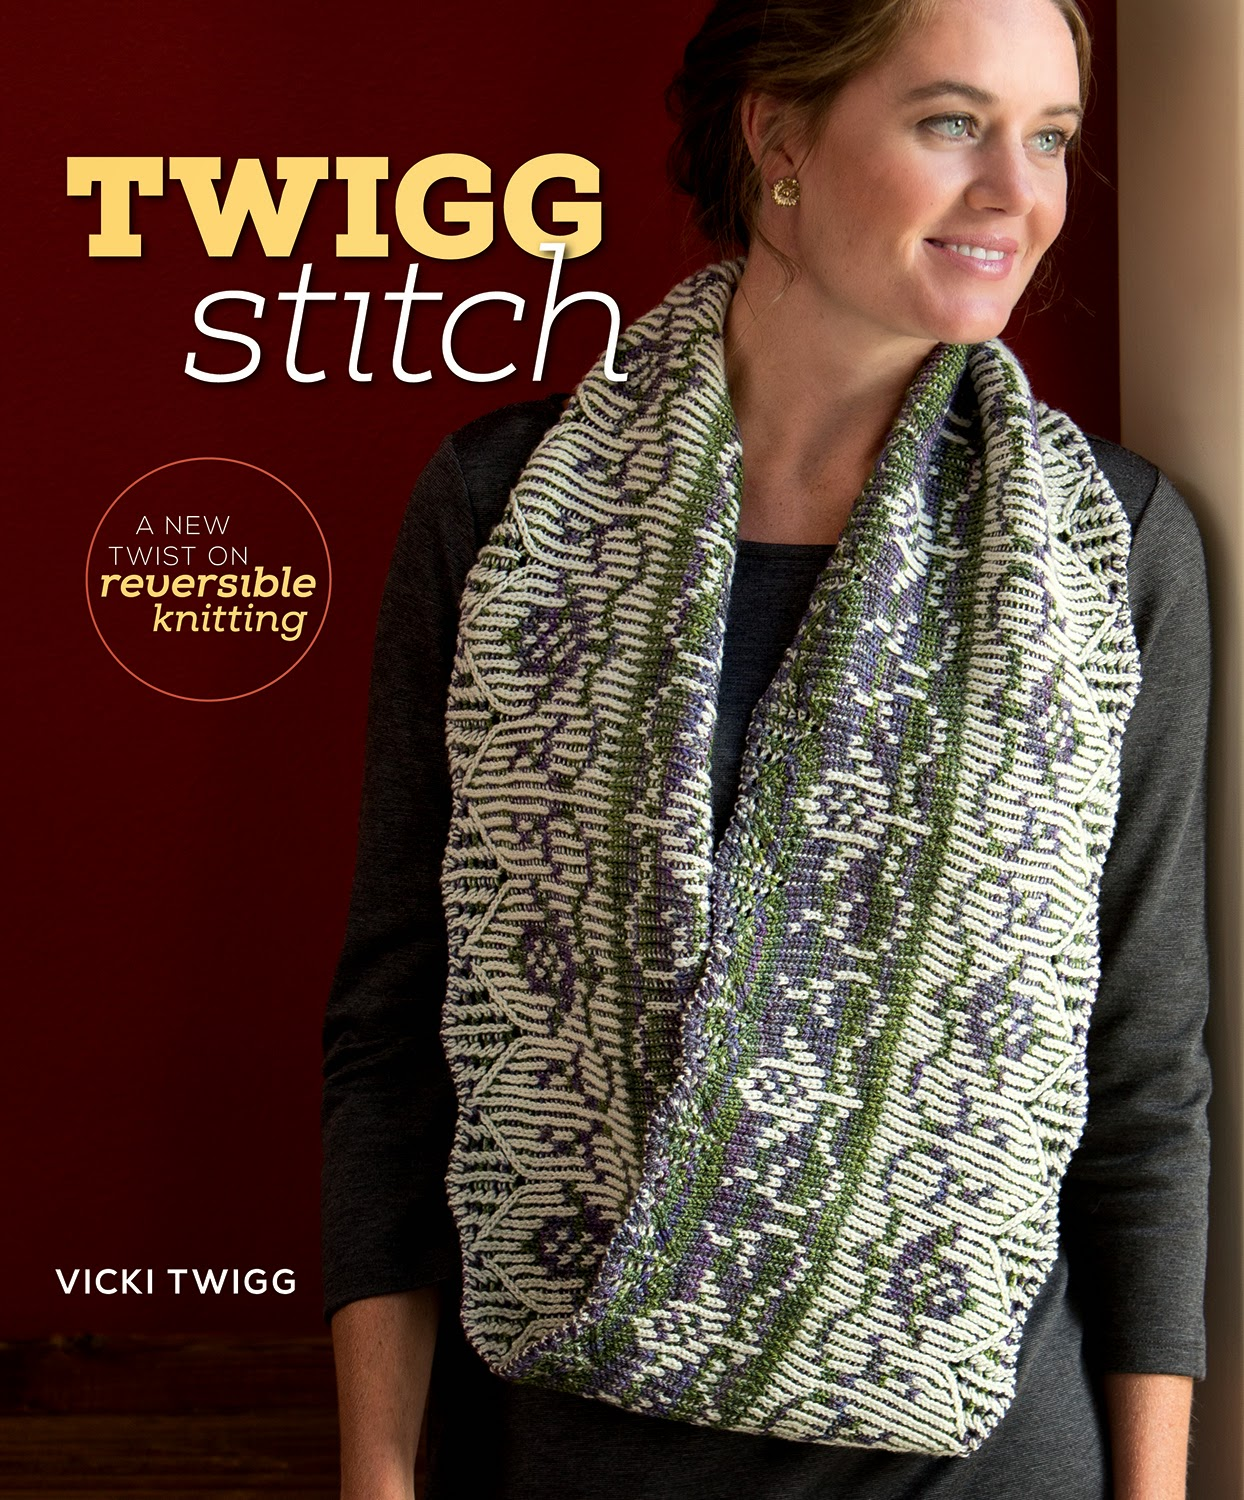 Cover of the Twigg Stitch book with a woman wearing a white, purple, and green knit colorwork double-sided knit scarf pattern. Text reads: Twigg Stitch. A new twist on reversible knitting. Vicki Twigg.